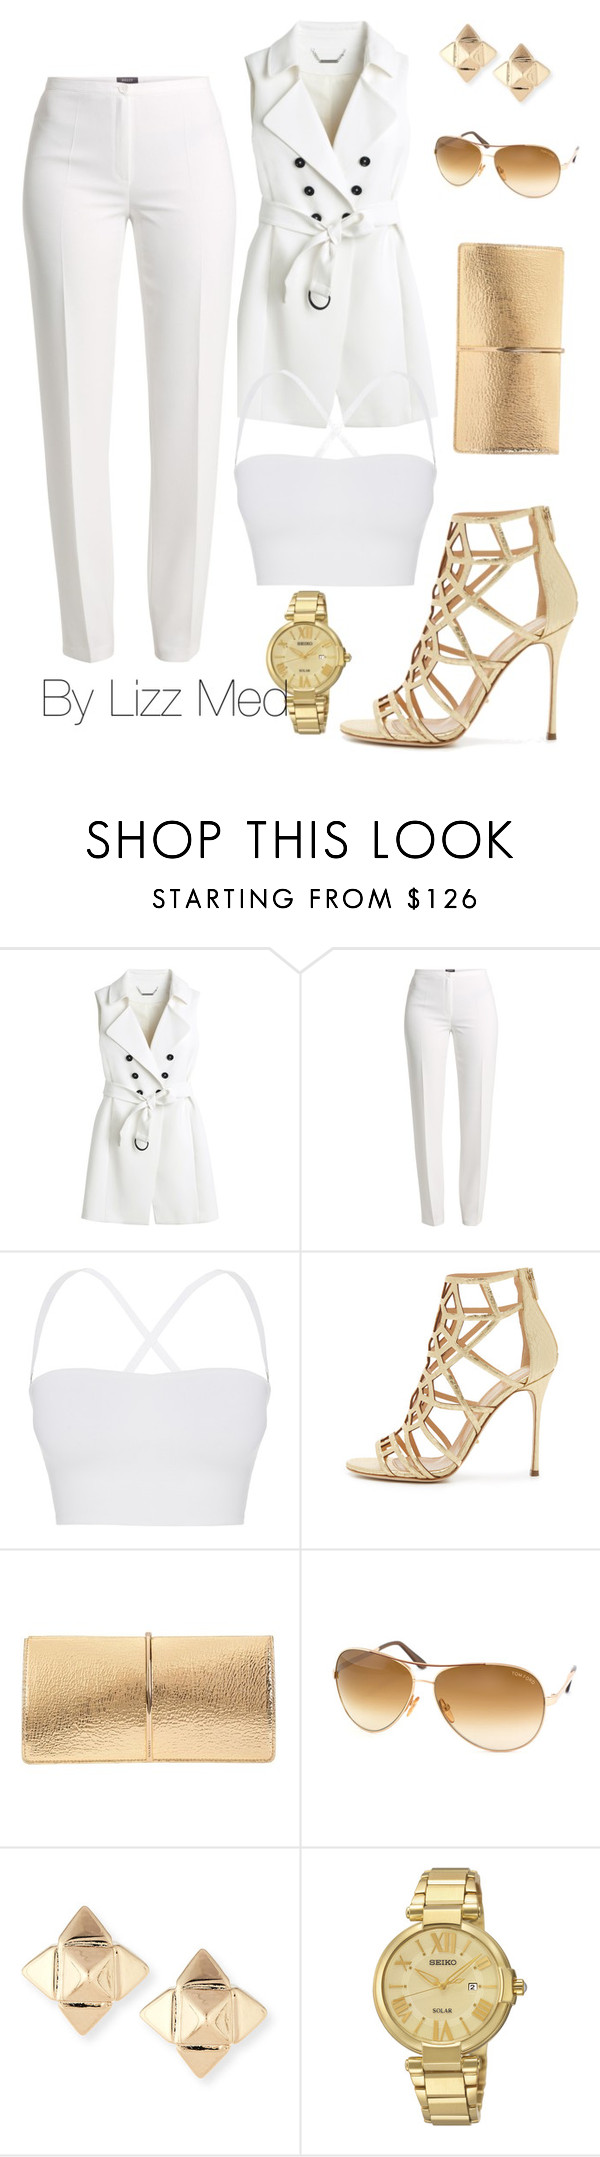 """""""White gold"""" by lizz-med ❤ liked on Polyvore featuring White House Black Market, Basler, Theory, Sergio Rossi, Nina Ricci, Tom Ford, Valentino and Seiko Watches"""